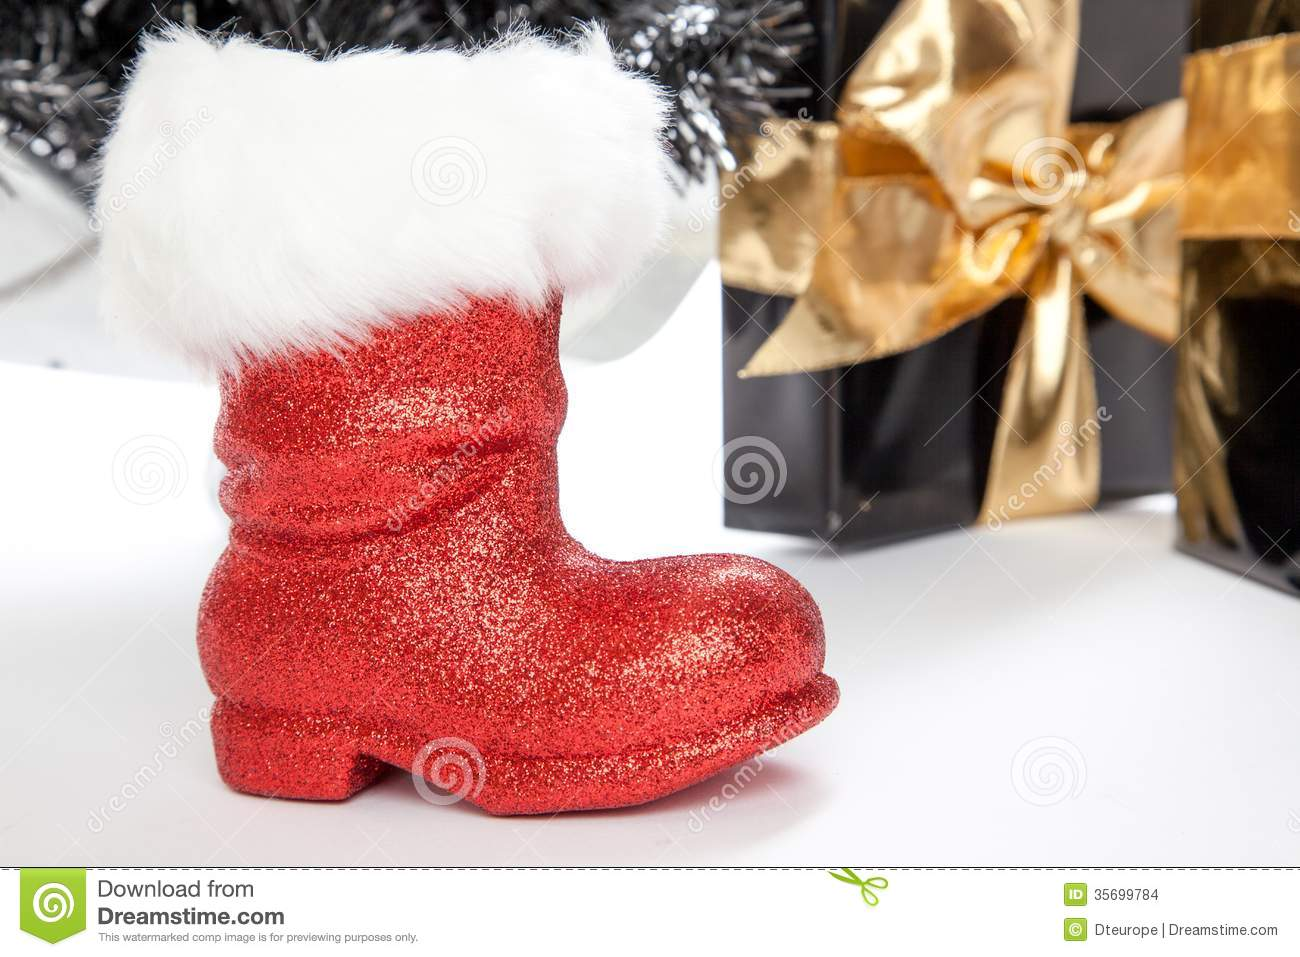 To acquire St. boot day Nicholas pictures picture trends